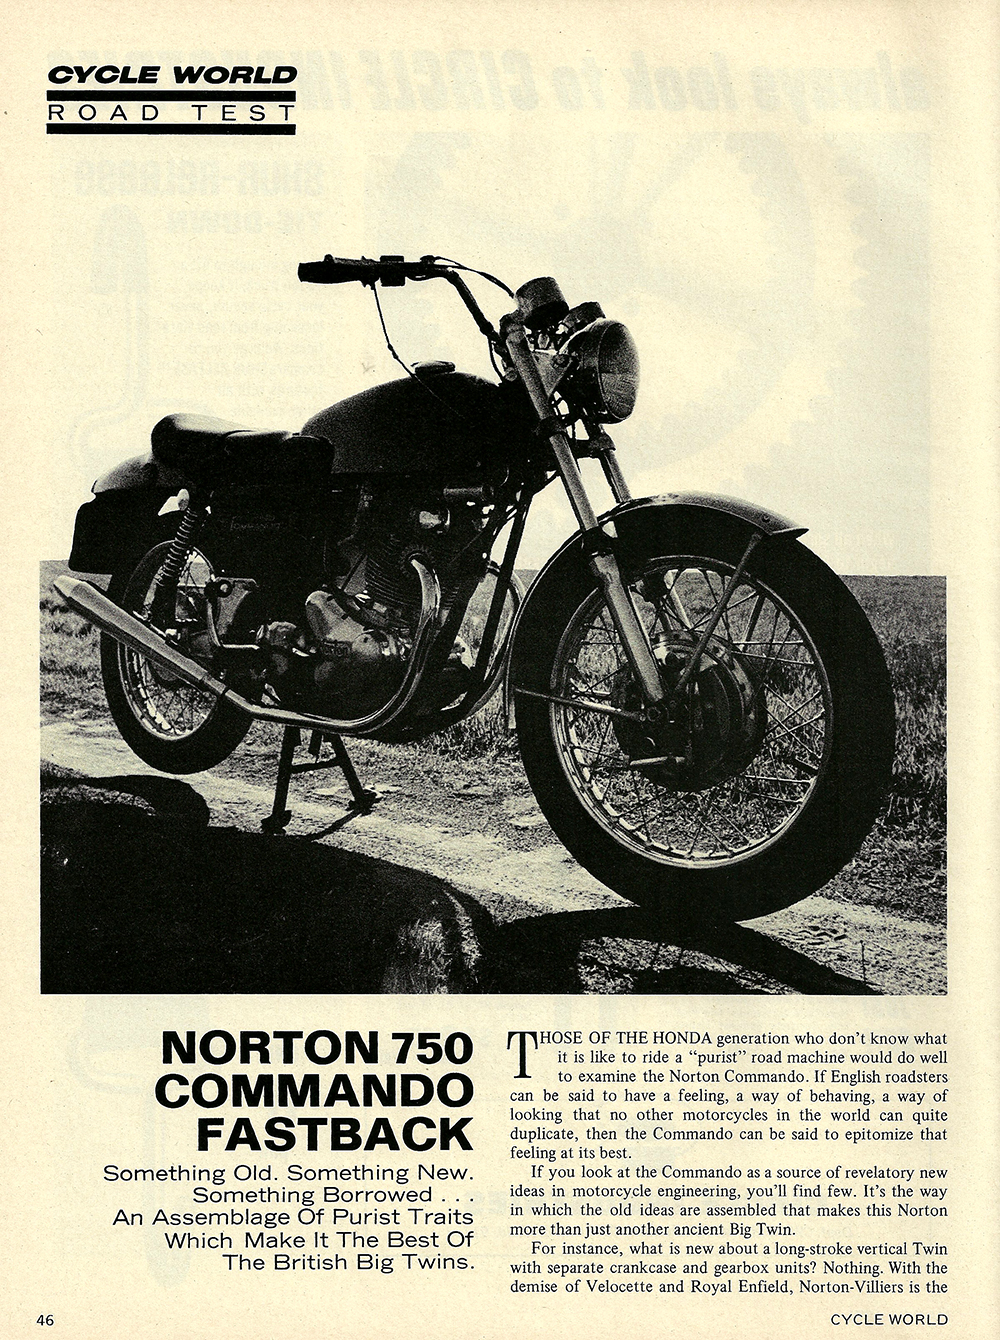 1971 Norton 750 Commando Fastback road test 01.jpg